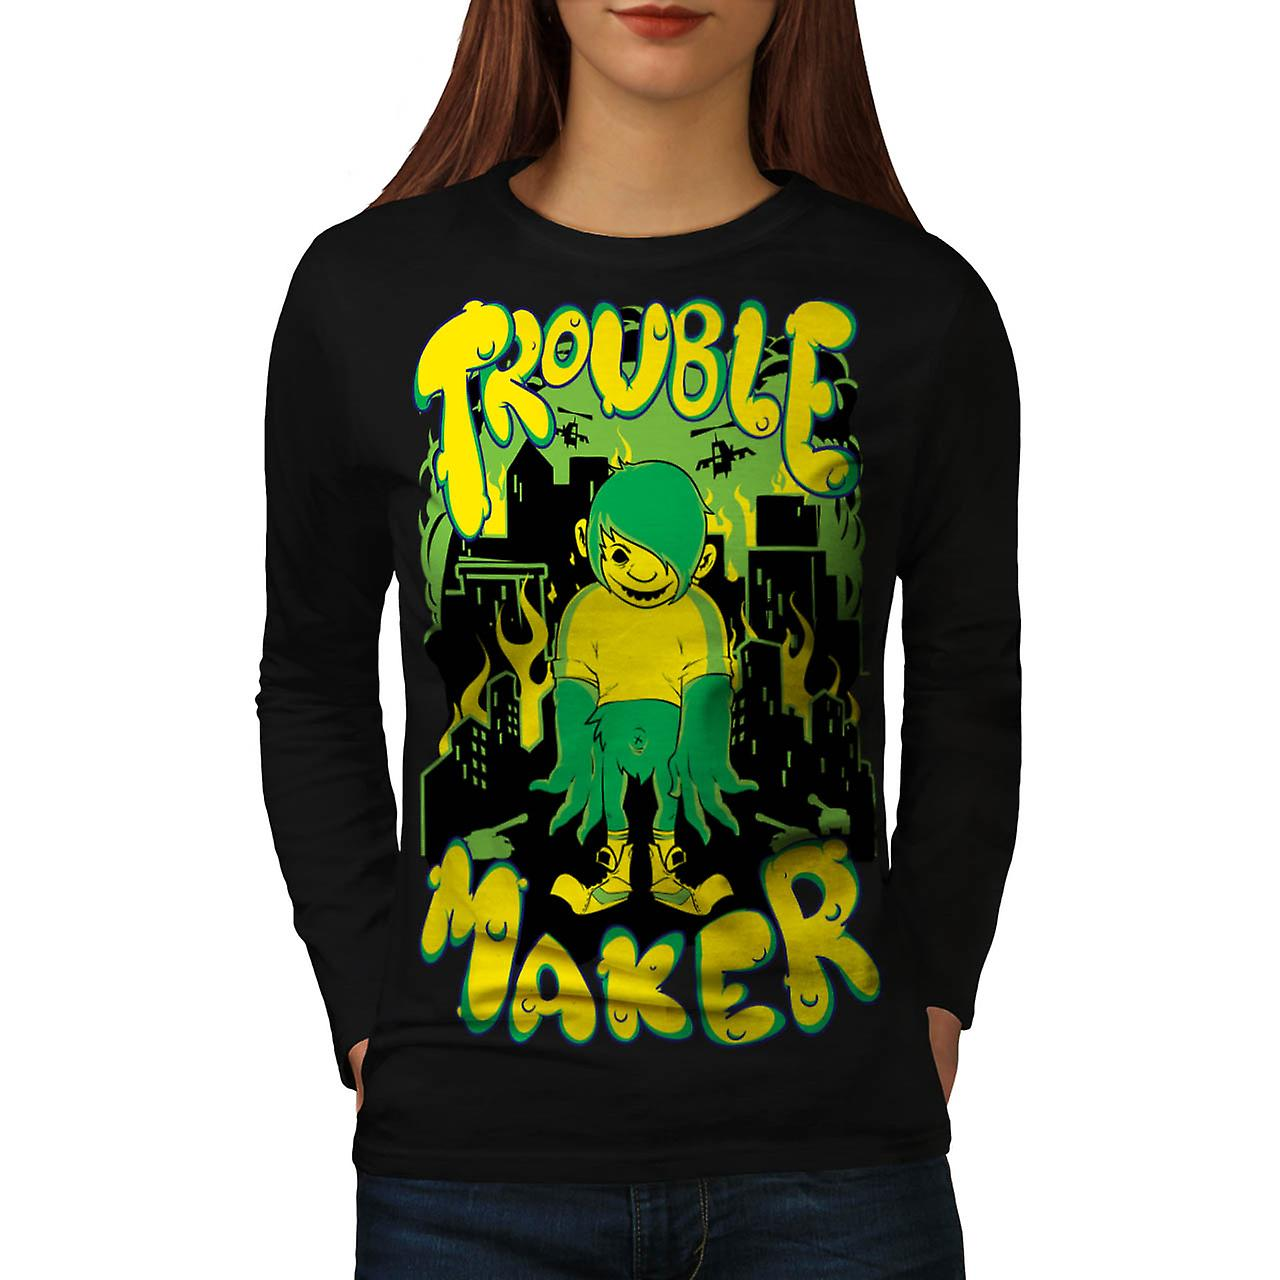 Trouble Maker Art Fashion Women Black Long Sleeve T-shirt | Wellcoda